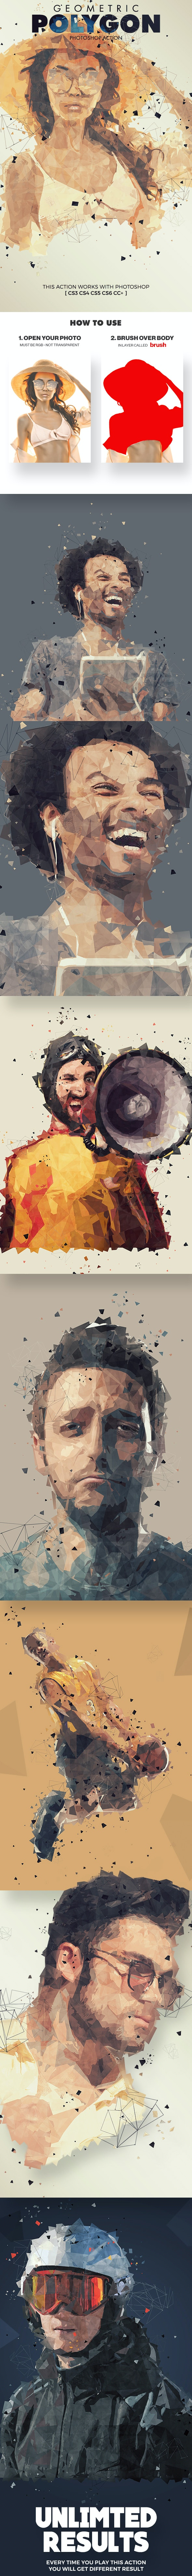 Geometric Polygon Photoshop Action - Photo Effects Actions